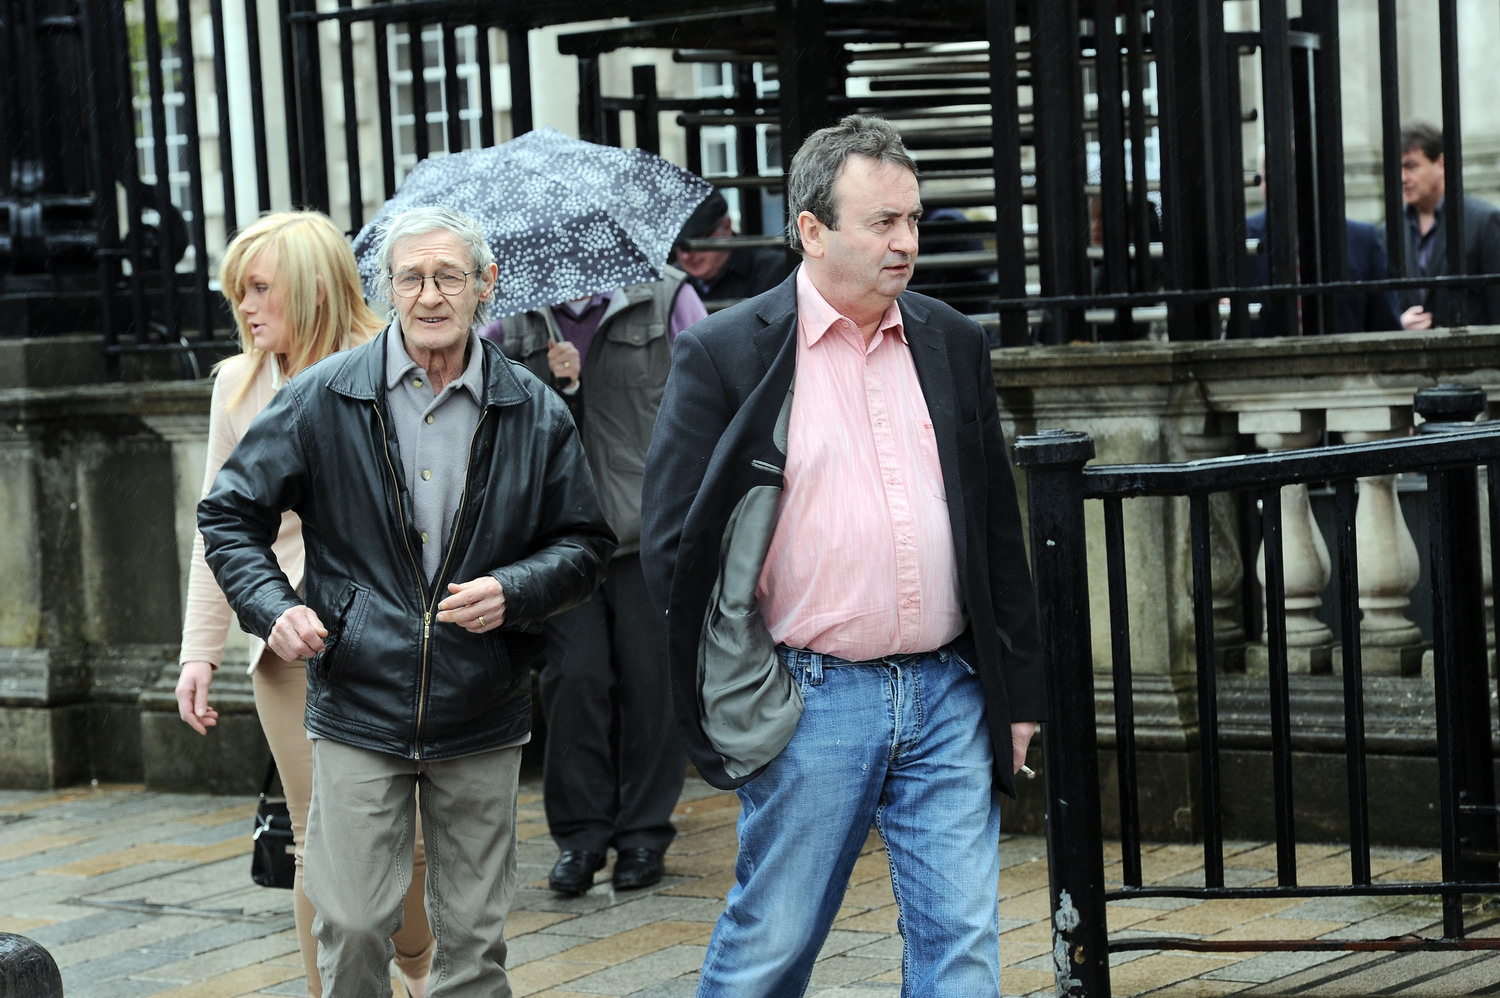 Paddy Joe Hill and Gerry Conlon leaving today's appeal hearing